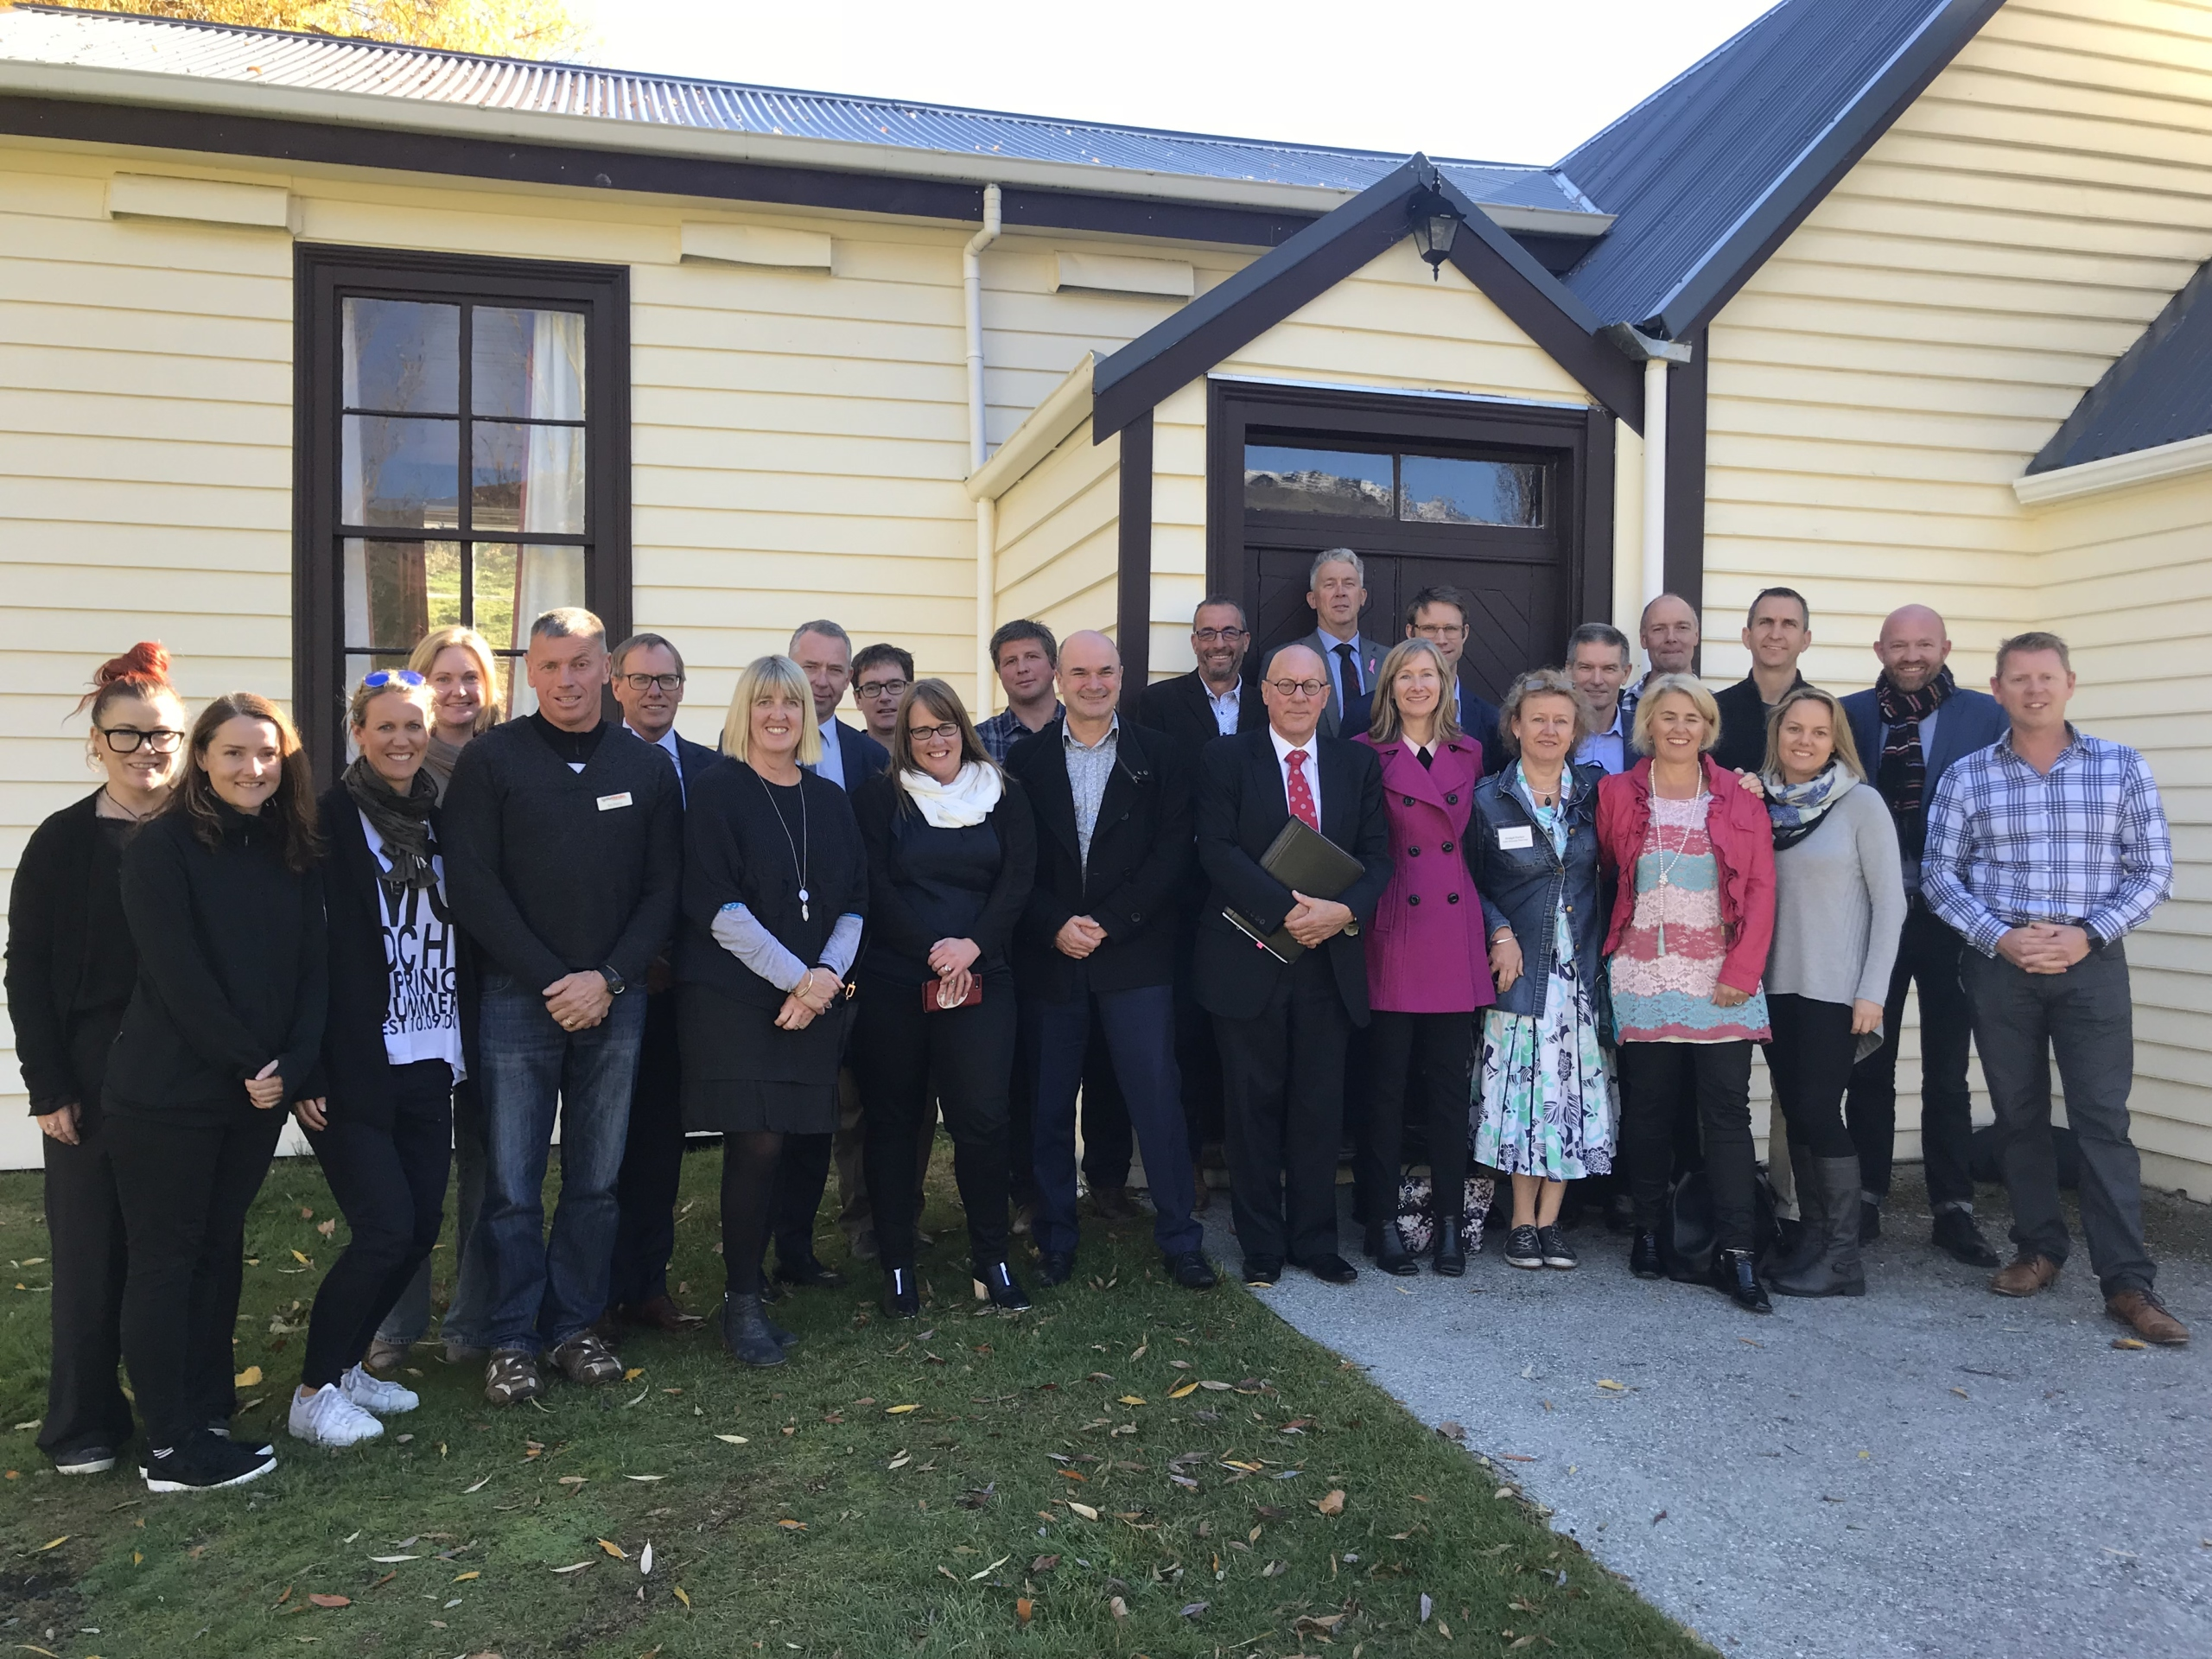 Queenstown and Wanaka unite to address regional issues